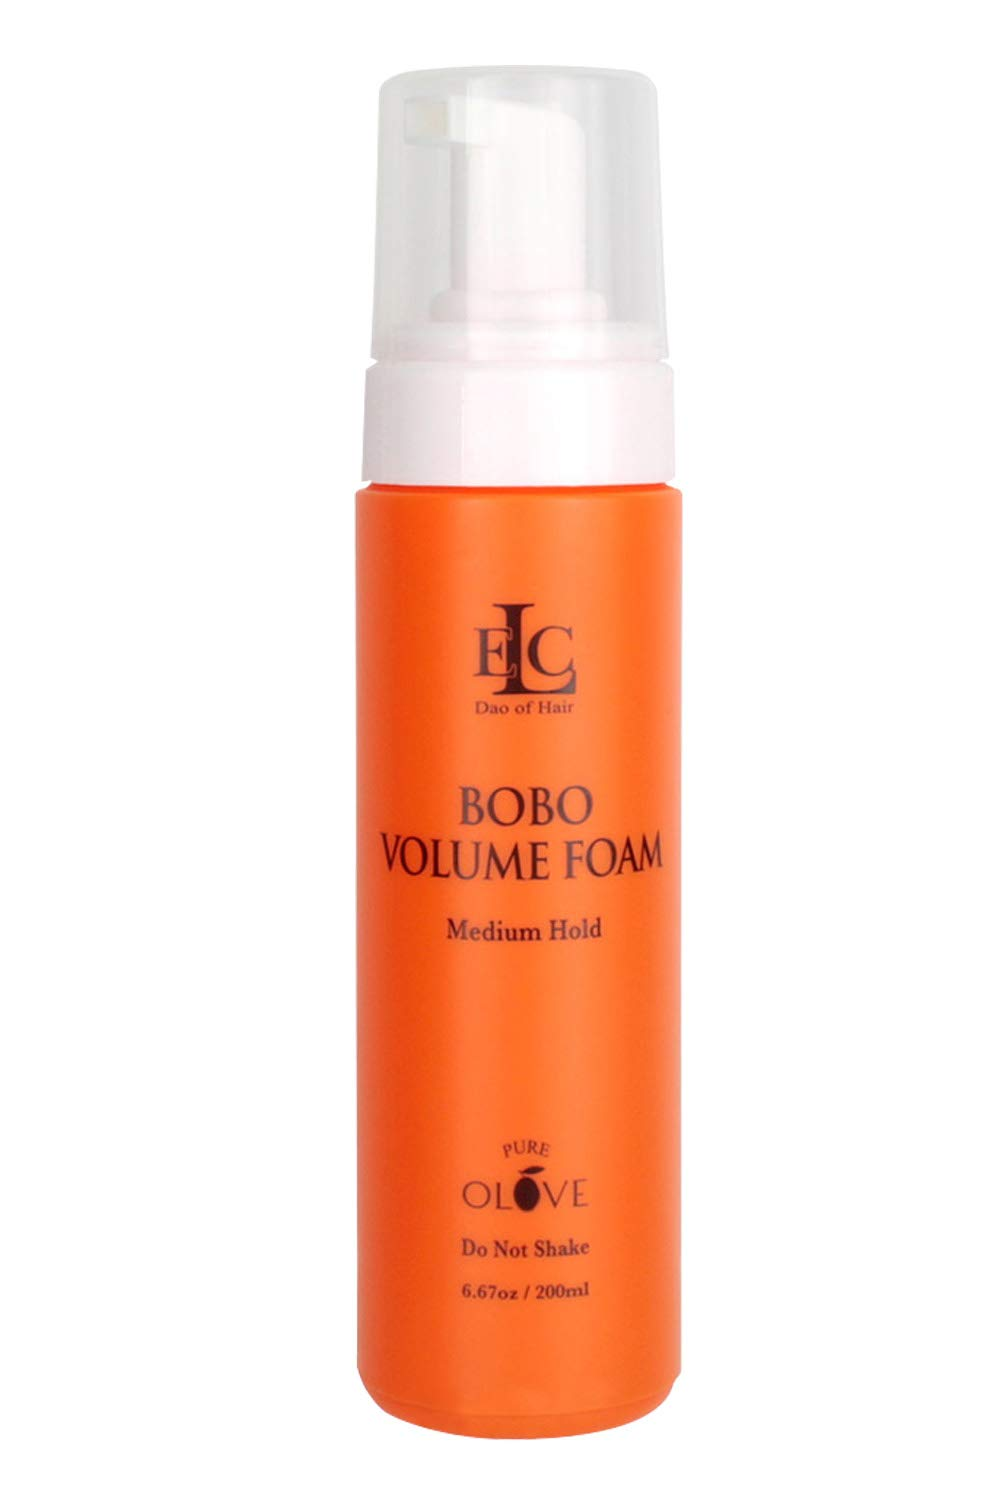 ELC Dao of Hair Pure Olove Bobo Volume Foam, Lightweight Medium Holds Styling Foam that Builds All Day Volume with Shine - 6.67 oz